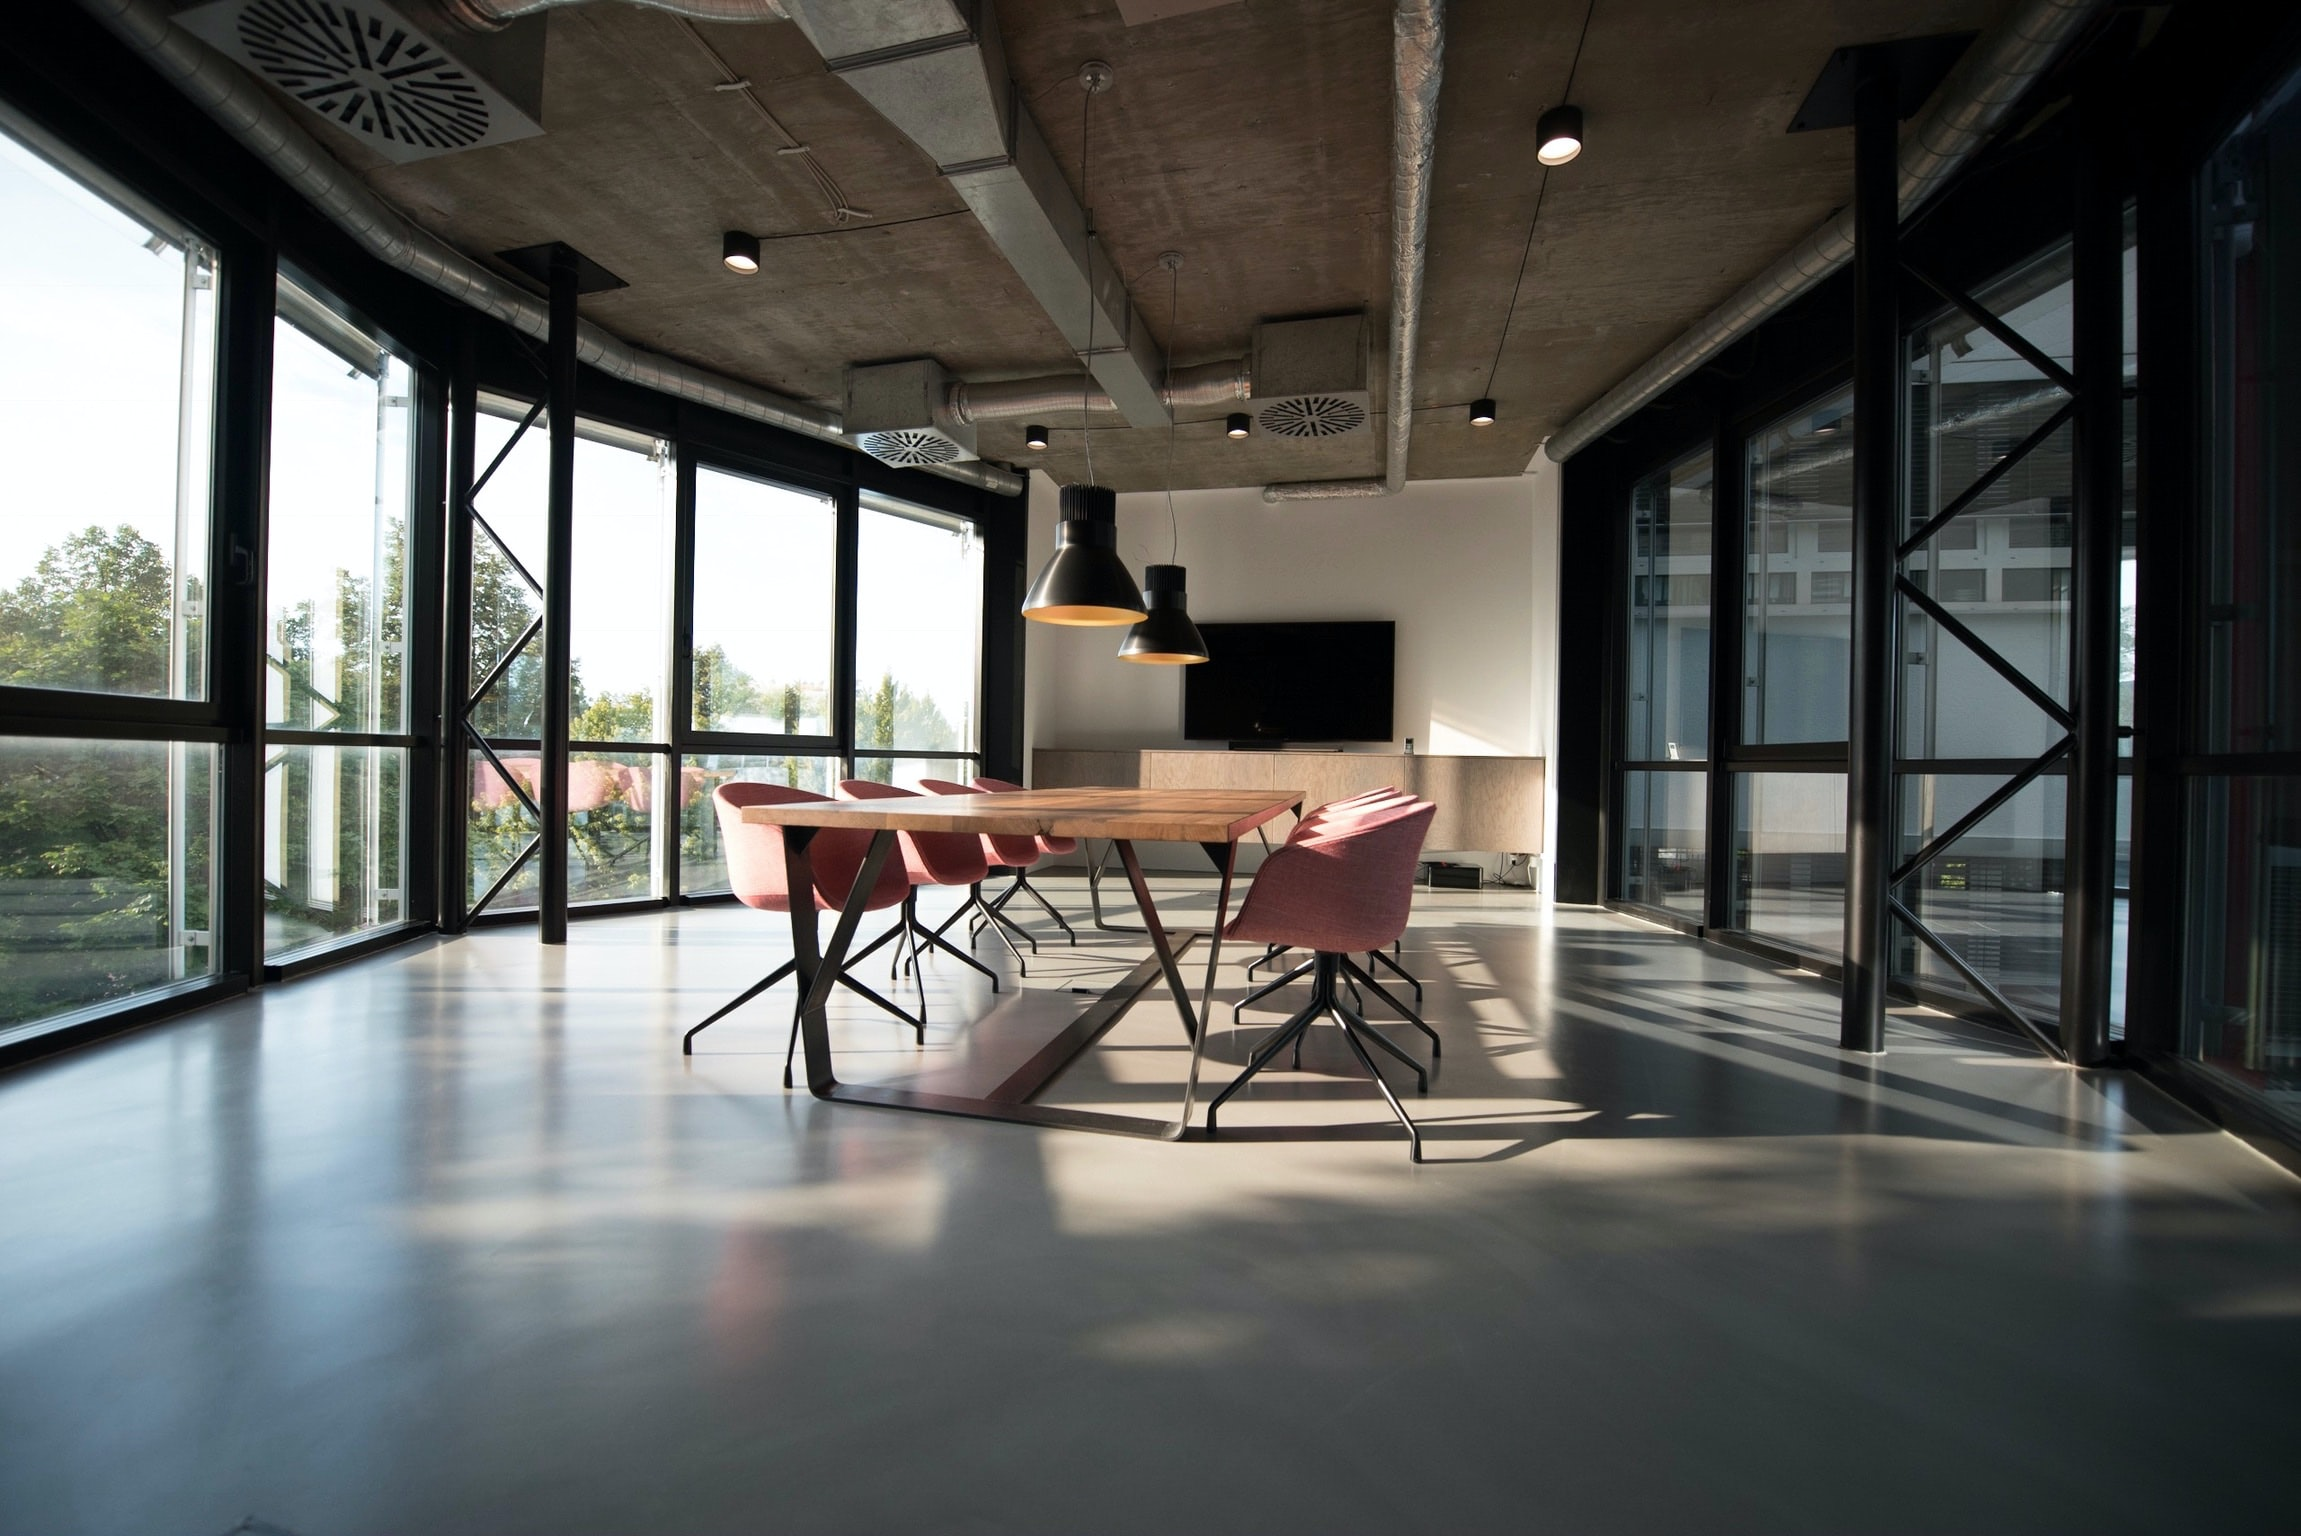 There are multiple types of agreements landlords are looking to make with coworking operators. Photo via unsplash.